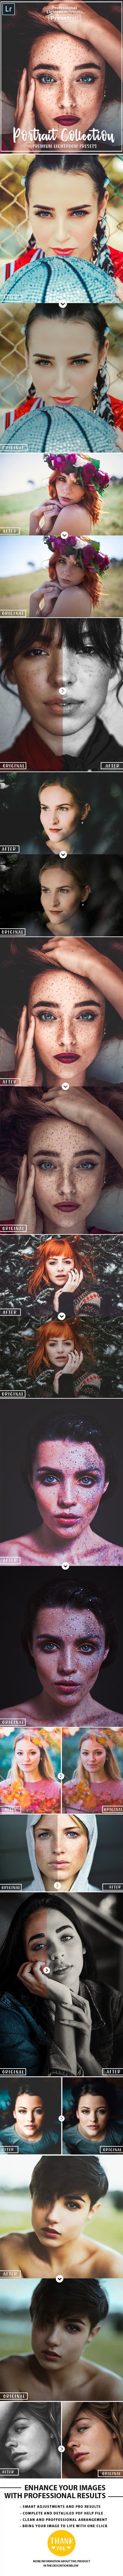 25 Portraits Collection Lightroom Presets - Portrait Lightroom Presets